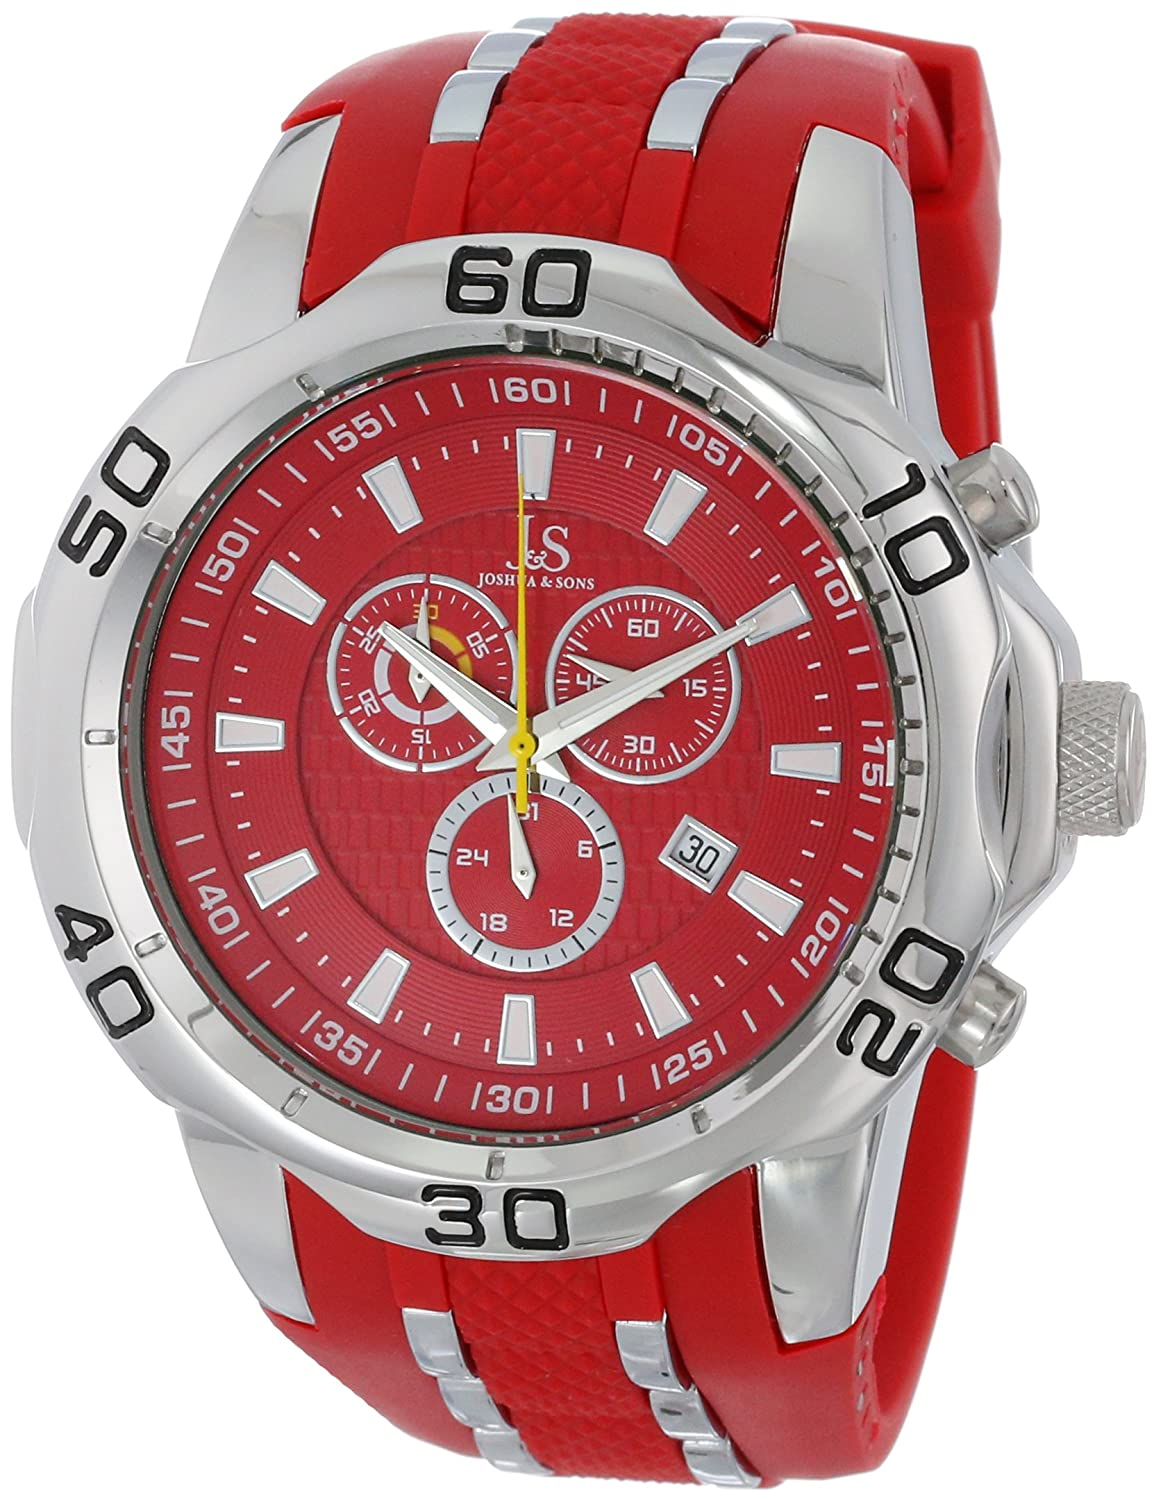 s watch subtle british mens lacoste image leather moon watches men from red